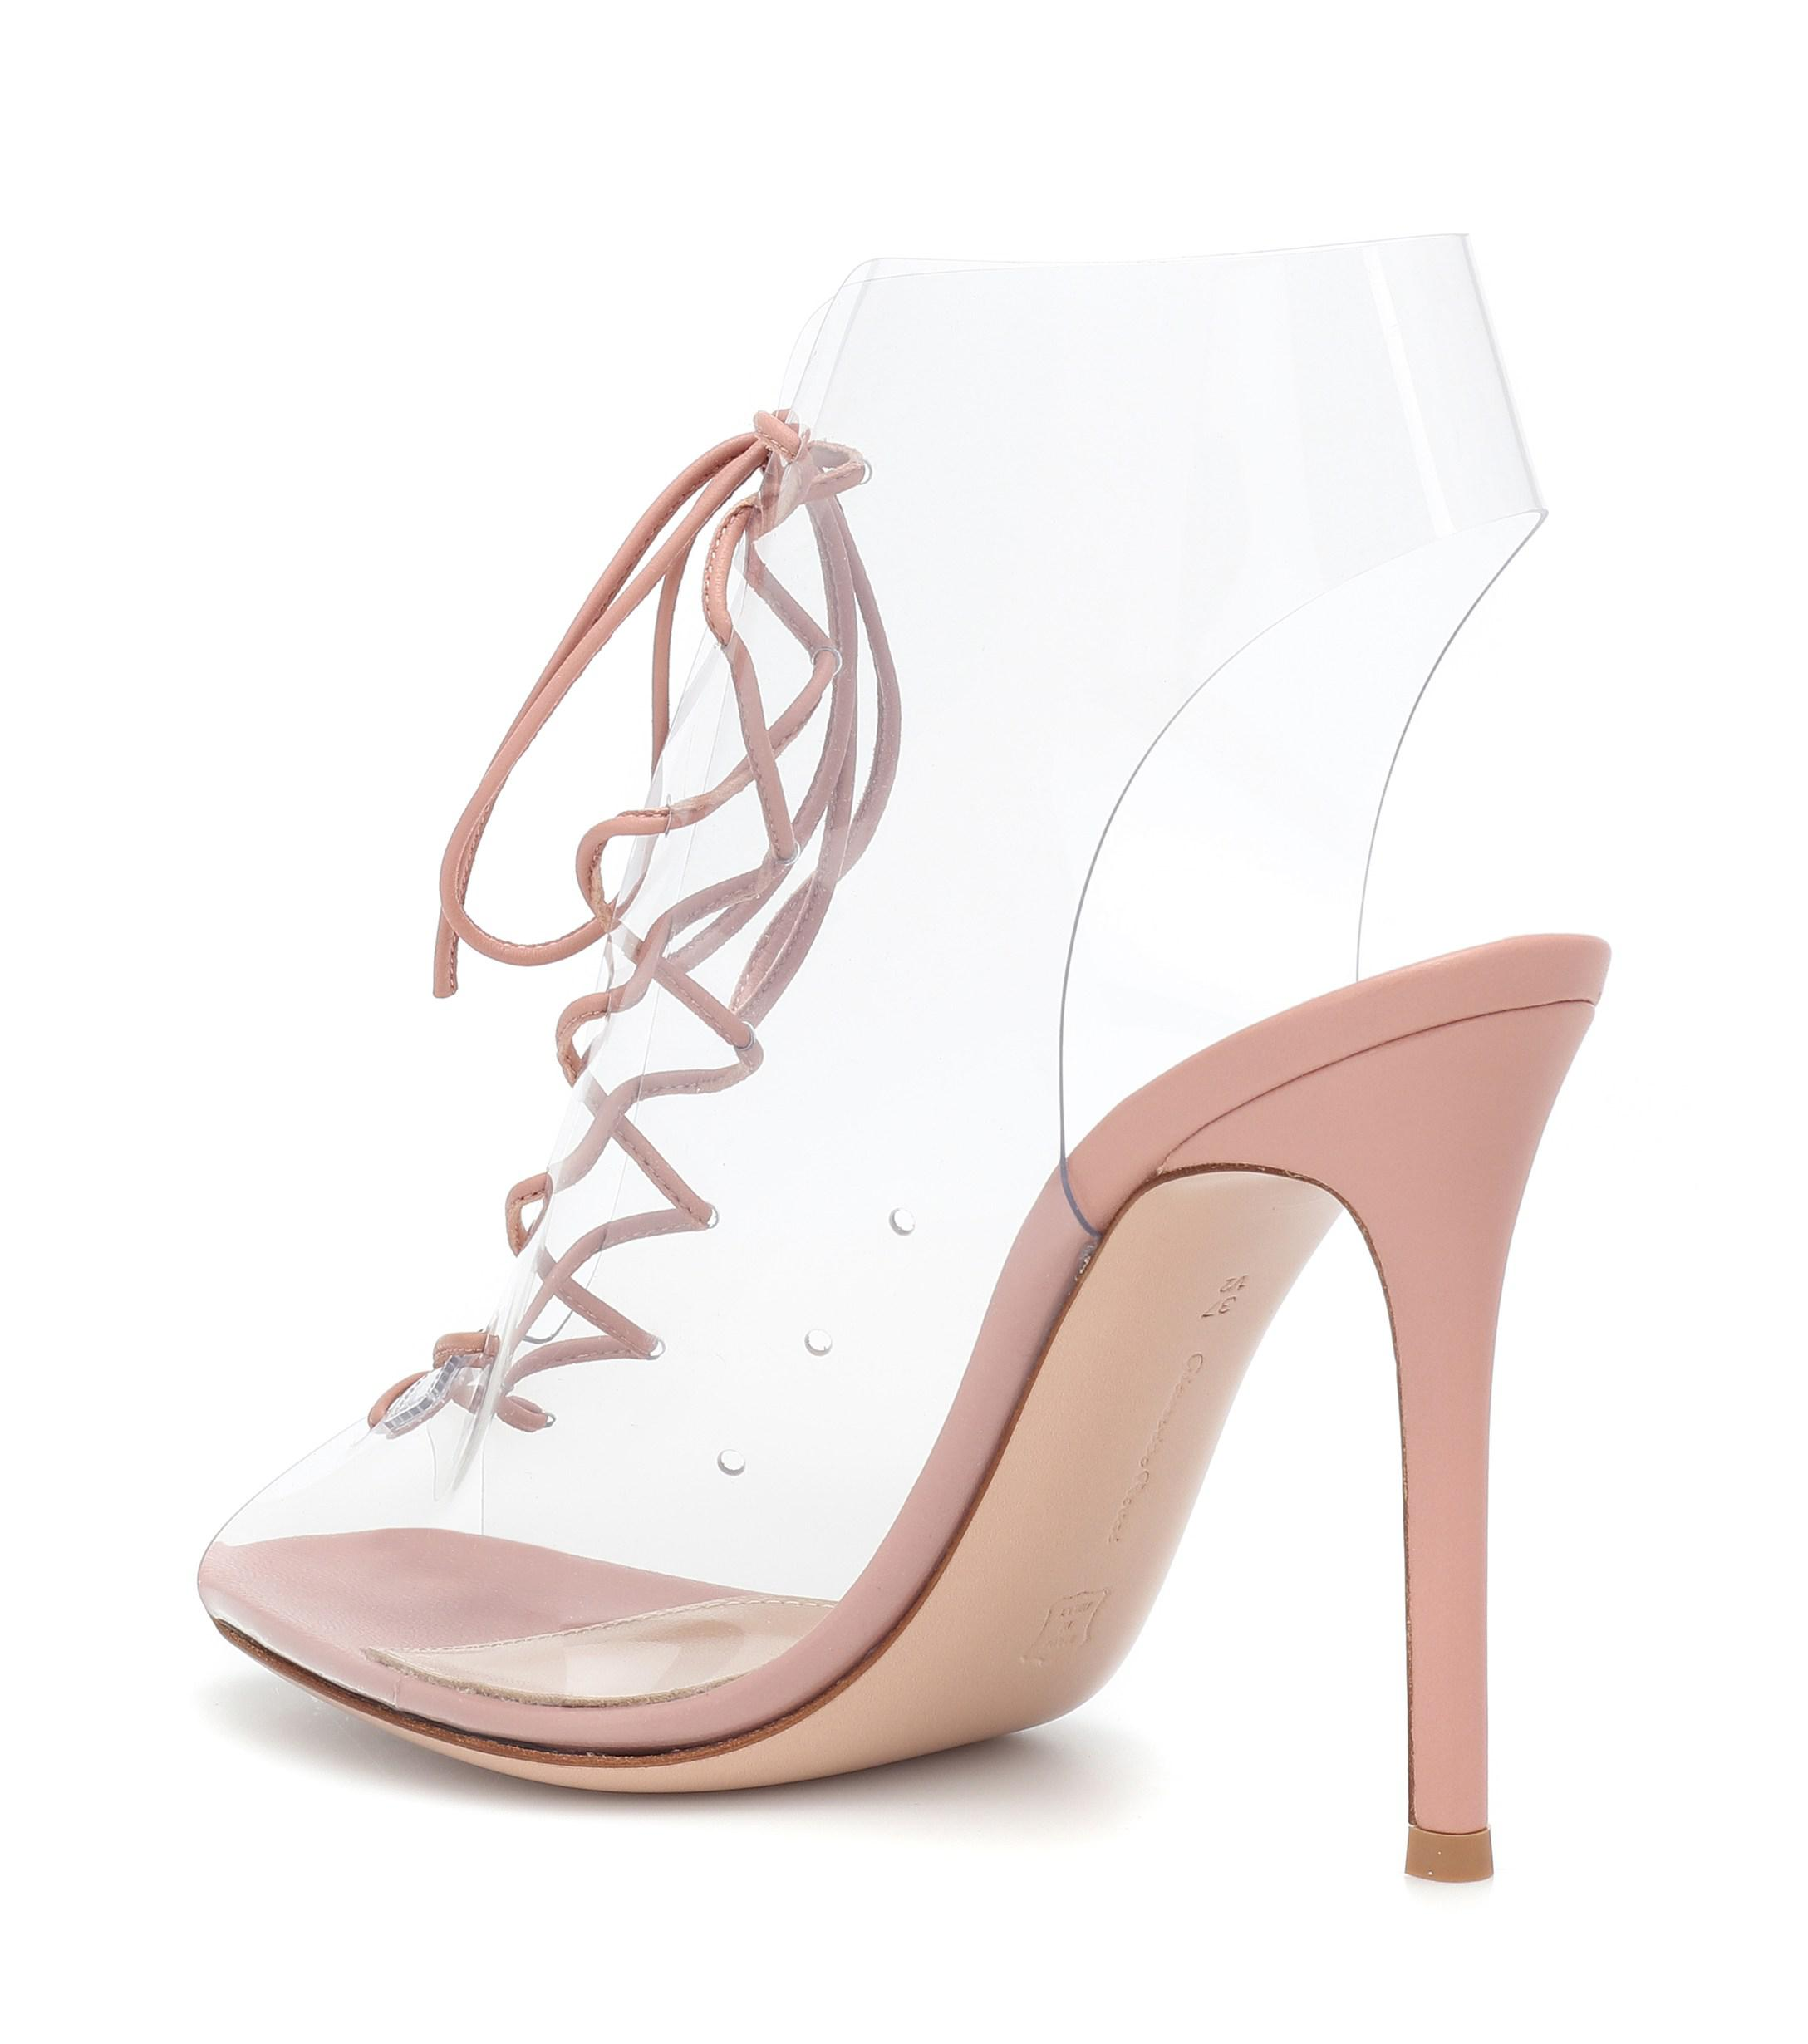 Gianvito Rossi Helmut Ankle Boots in Pink - Lyst